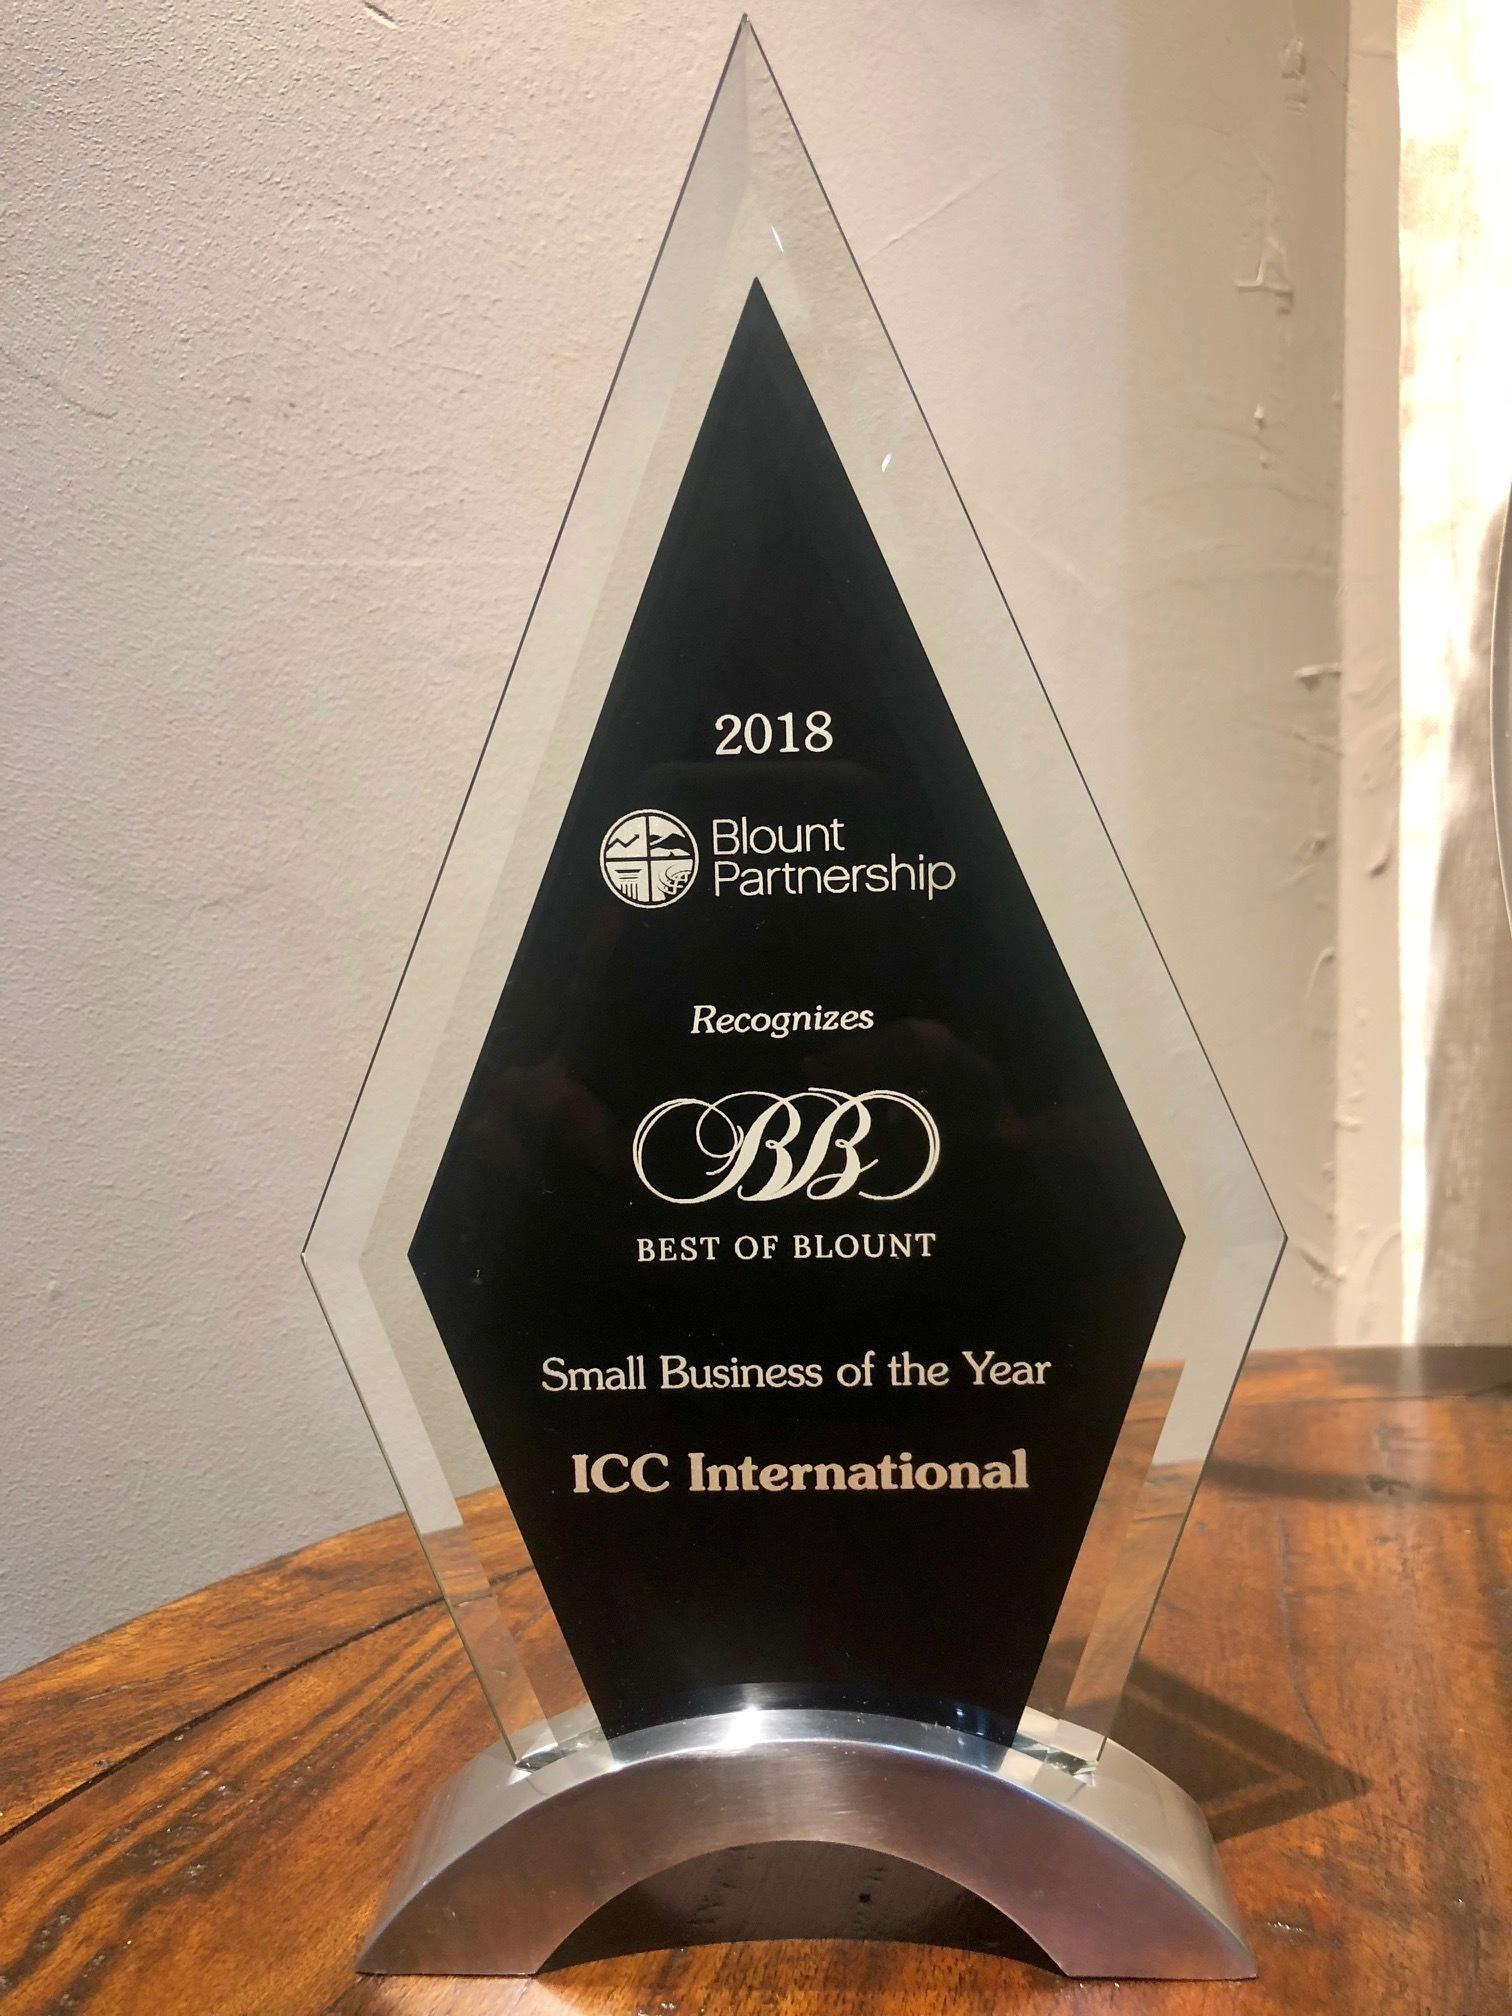 ICc International Best of Blount Small Business of the year award